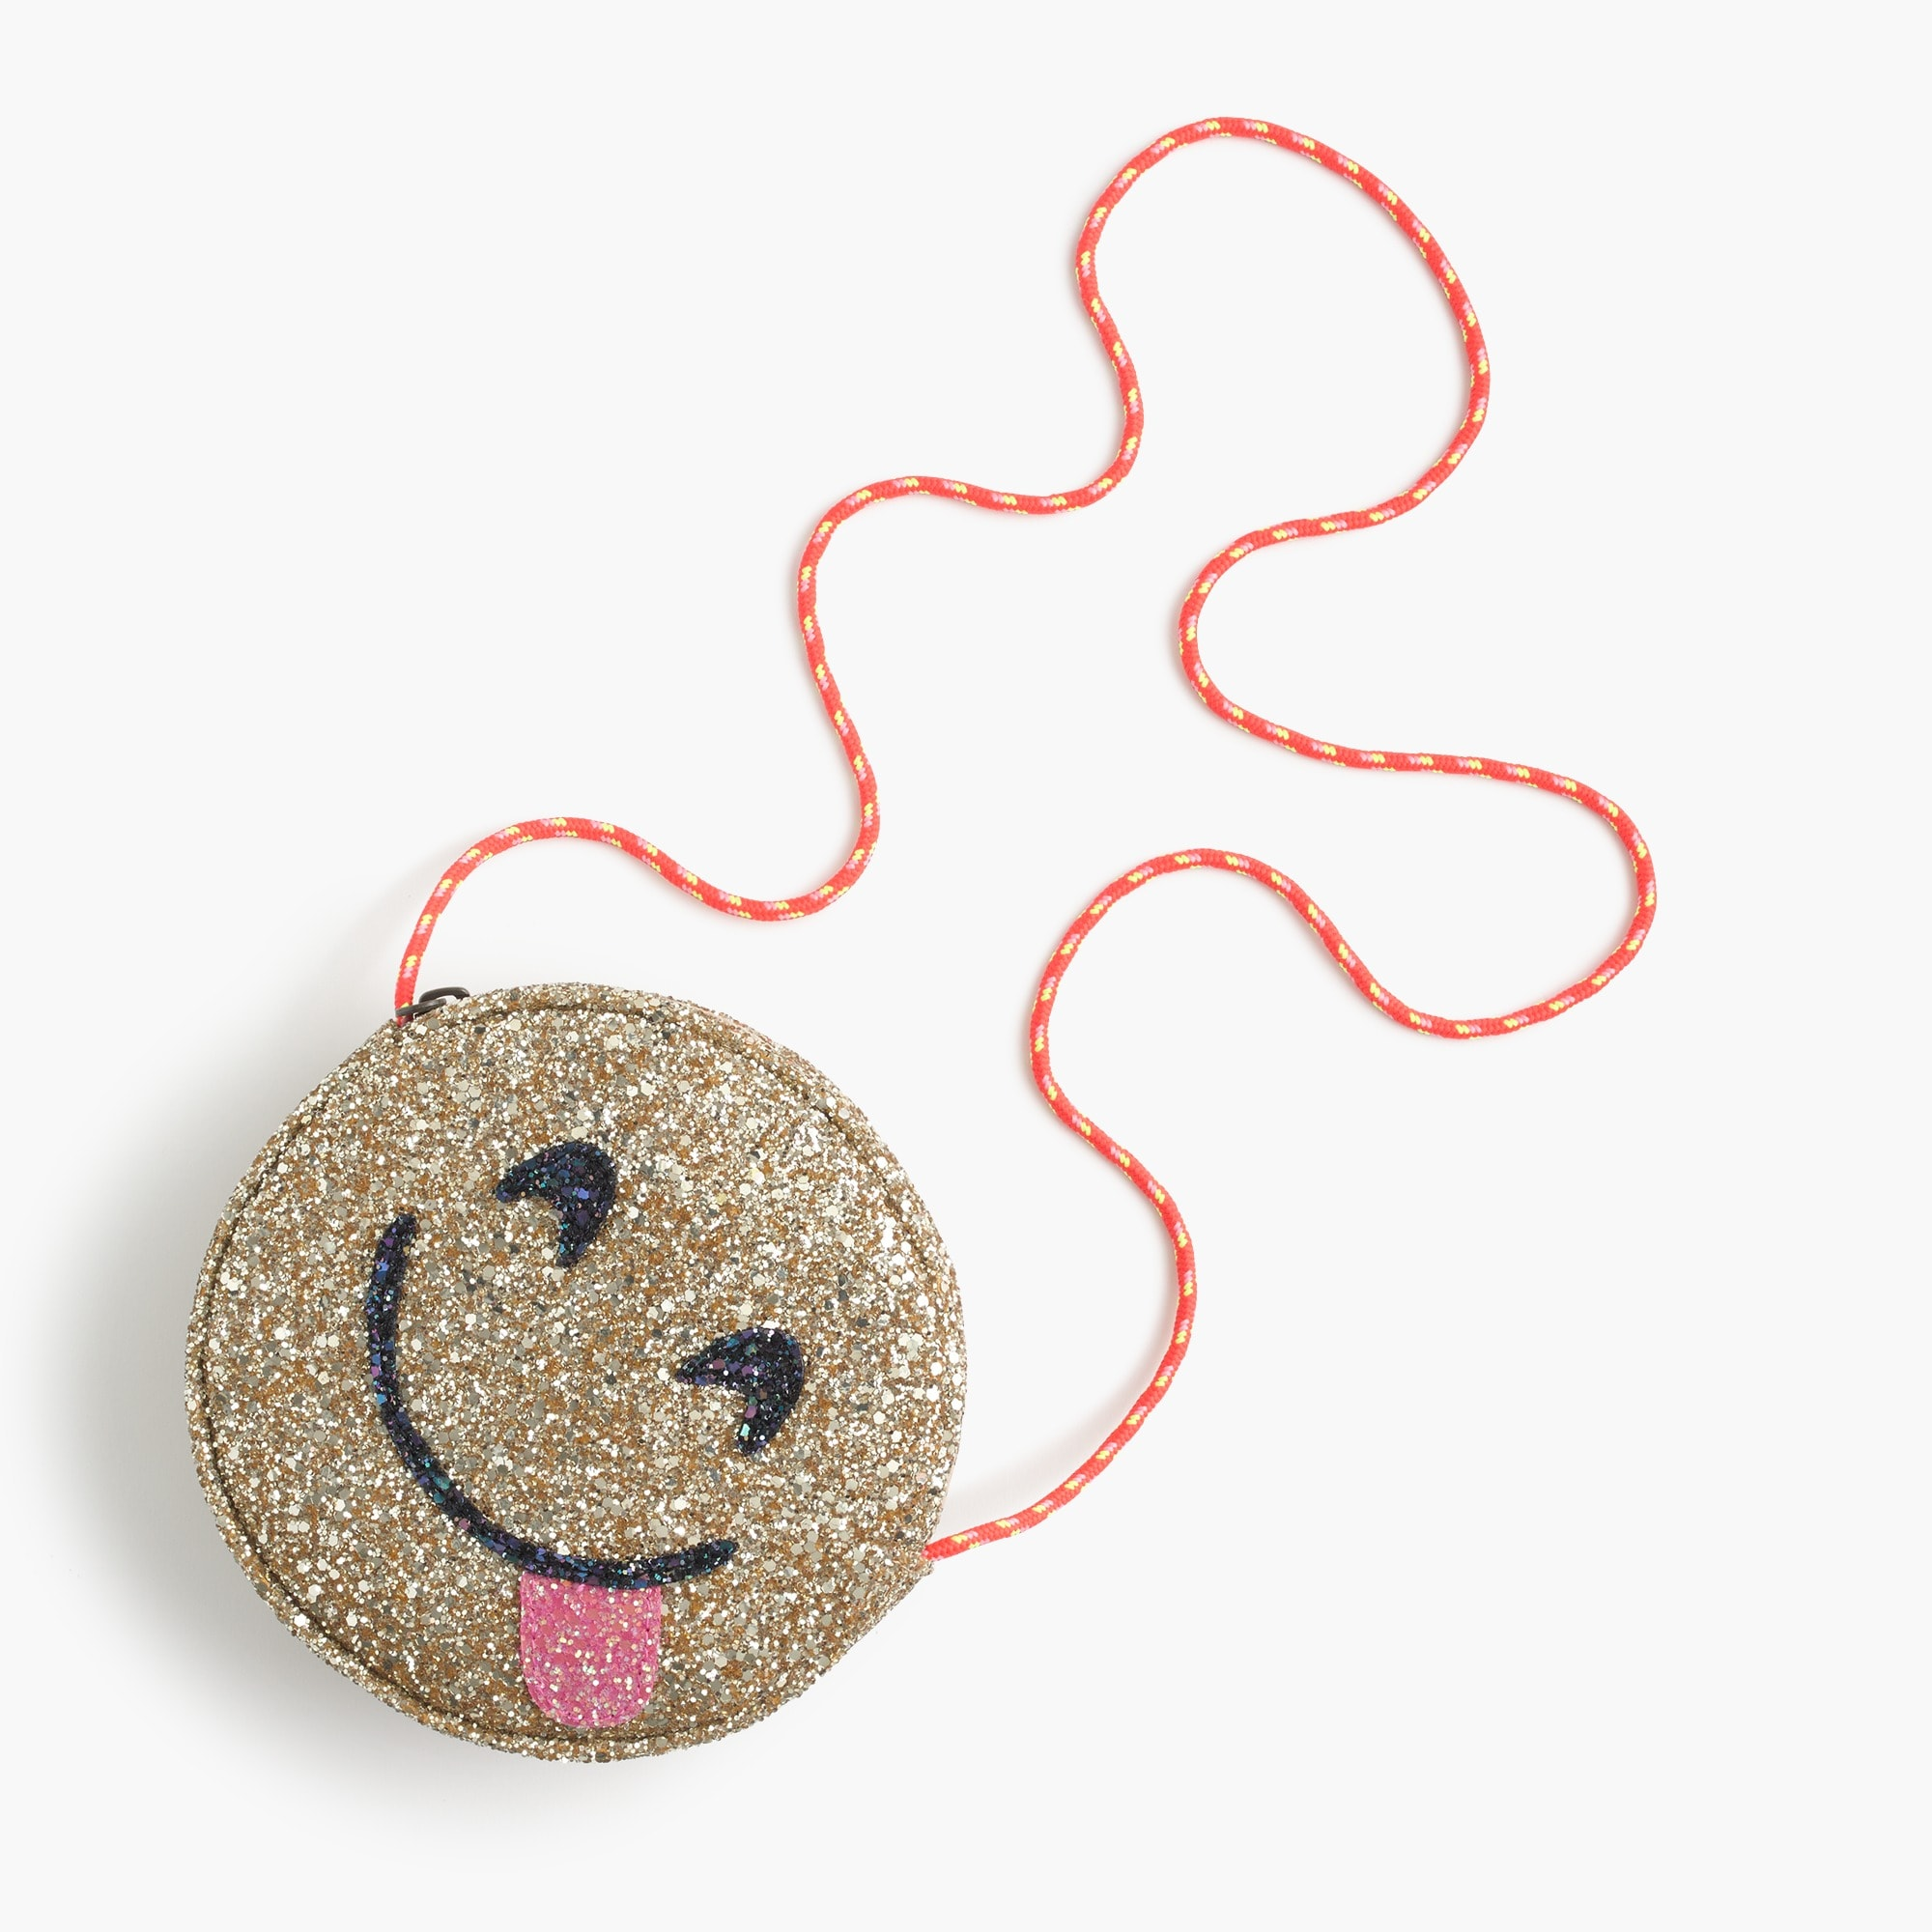 Image 1 for Girls' glitter bag in yummy emoji